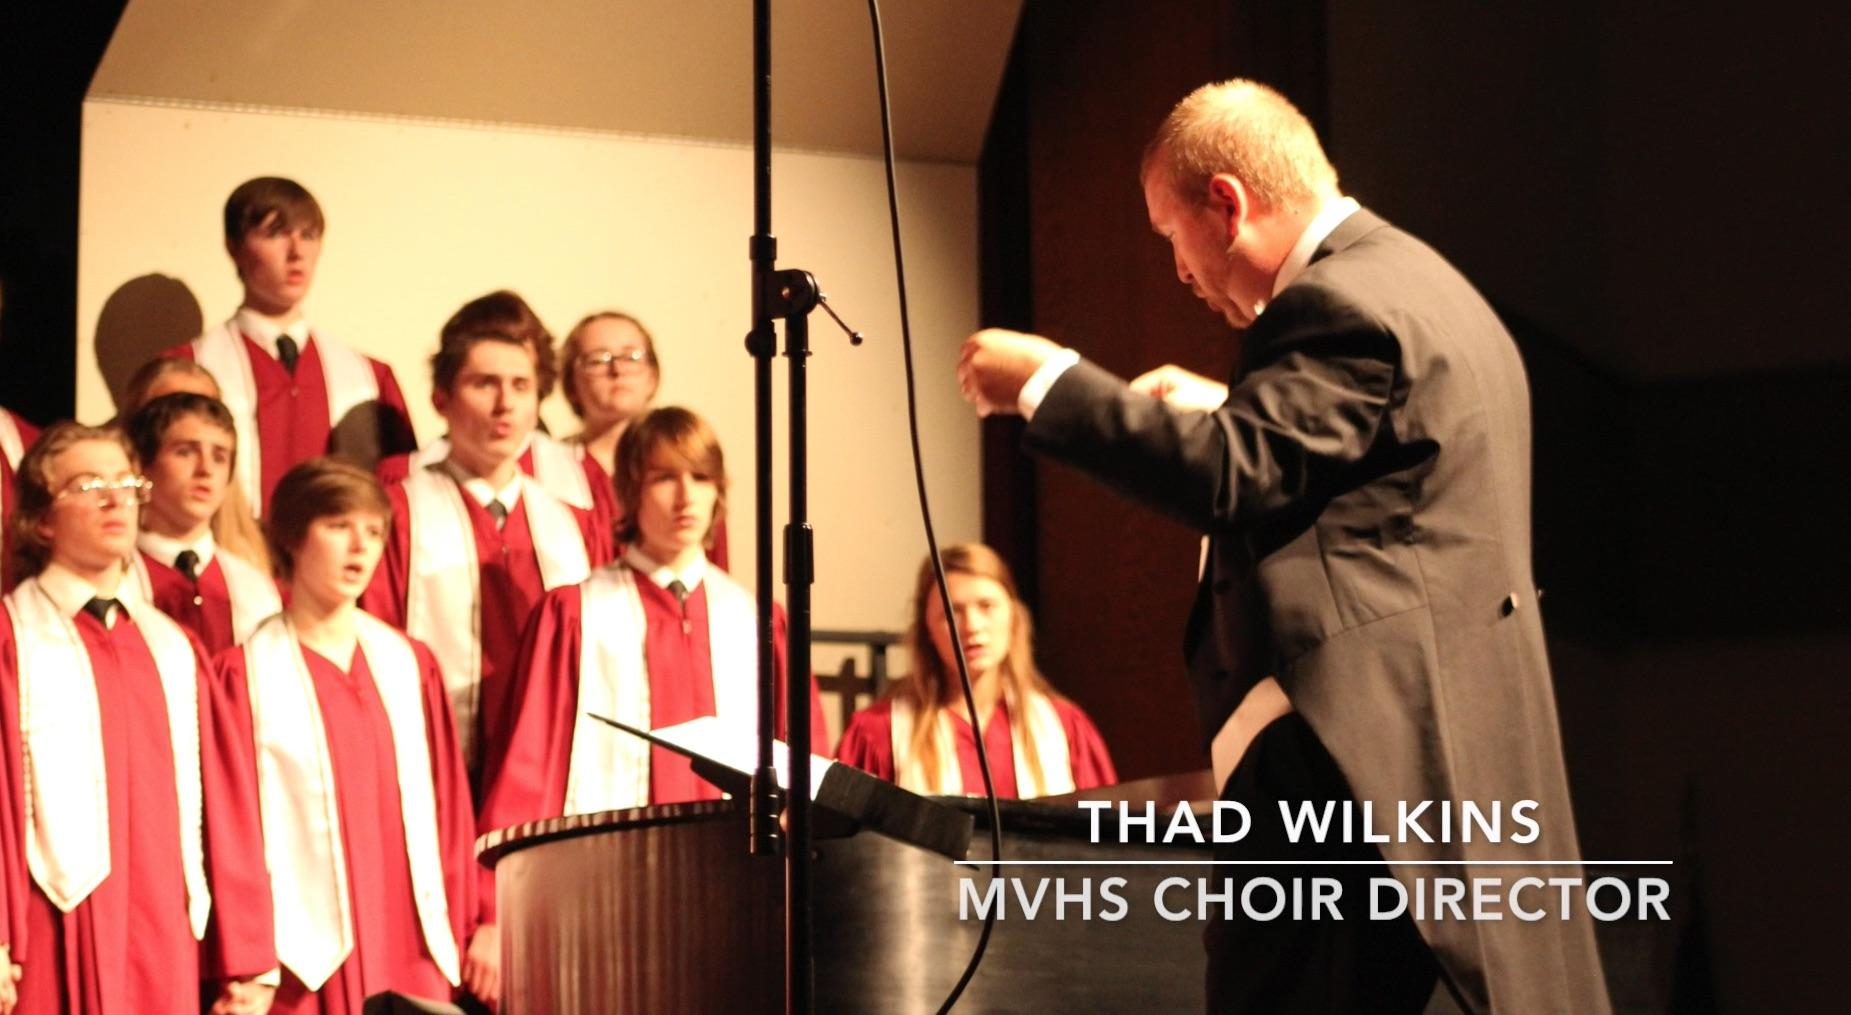 Director Thad Wilkins and the Mount Vernon Choir